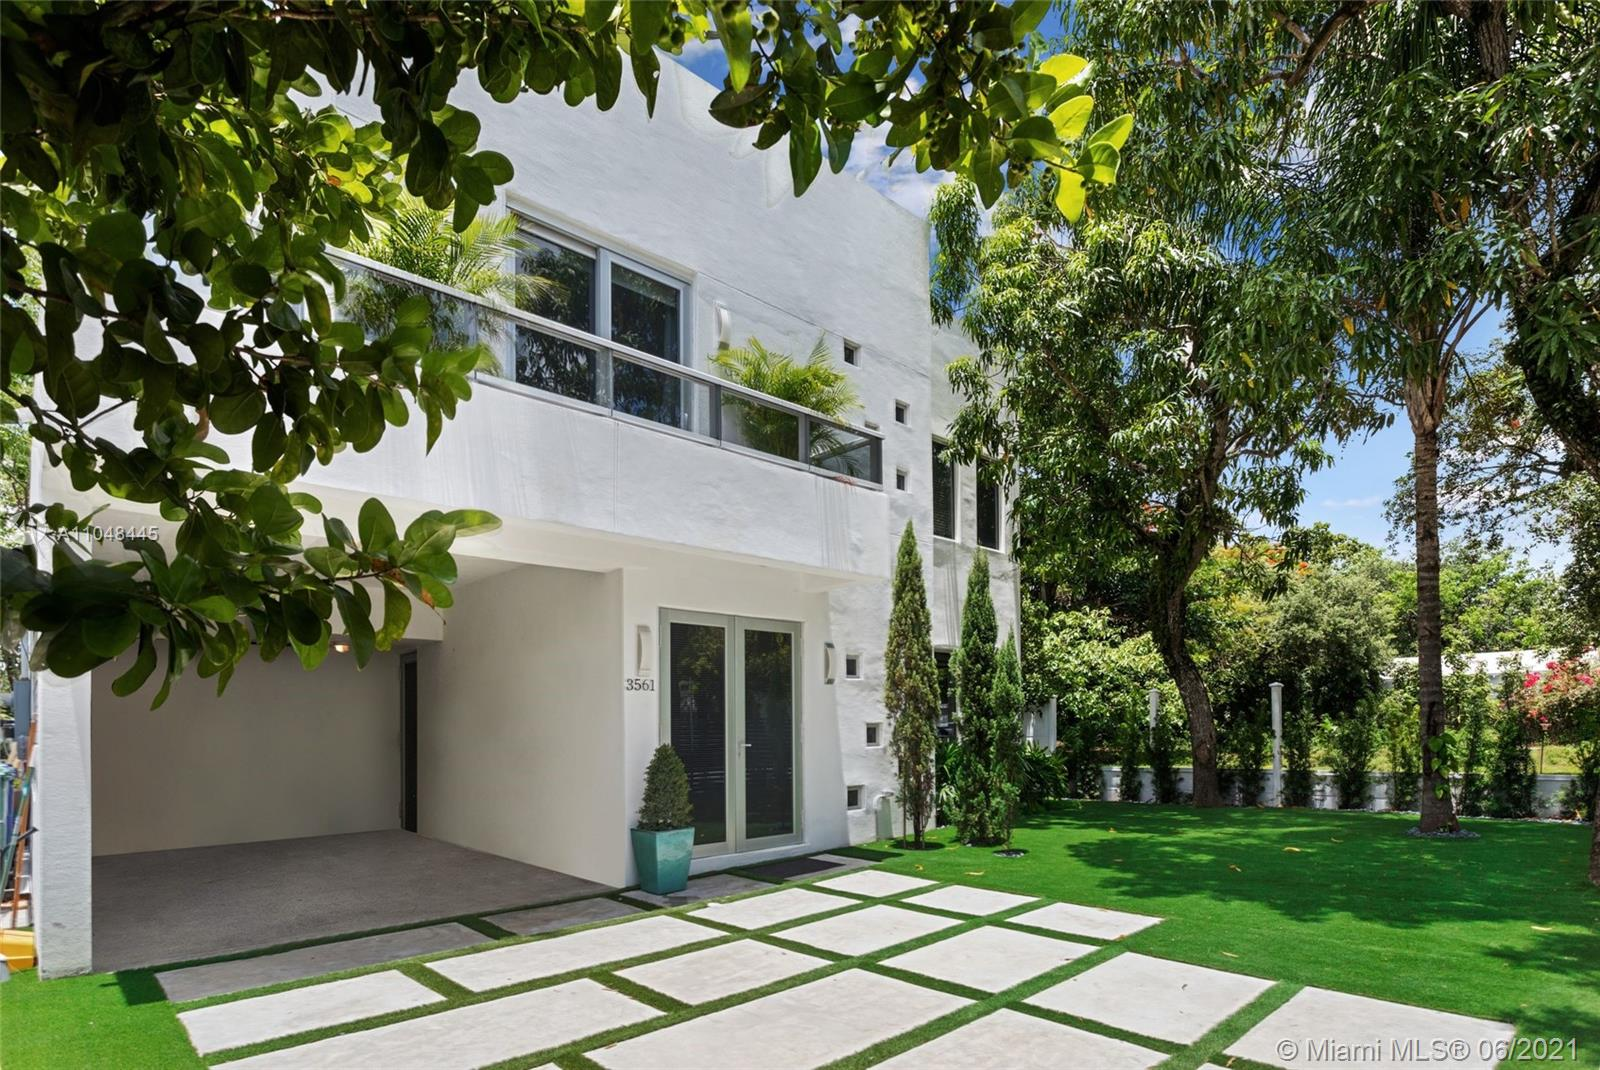 Frow Homestead - 3561 Charles Ave, Miami, FL 33133